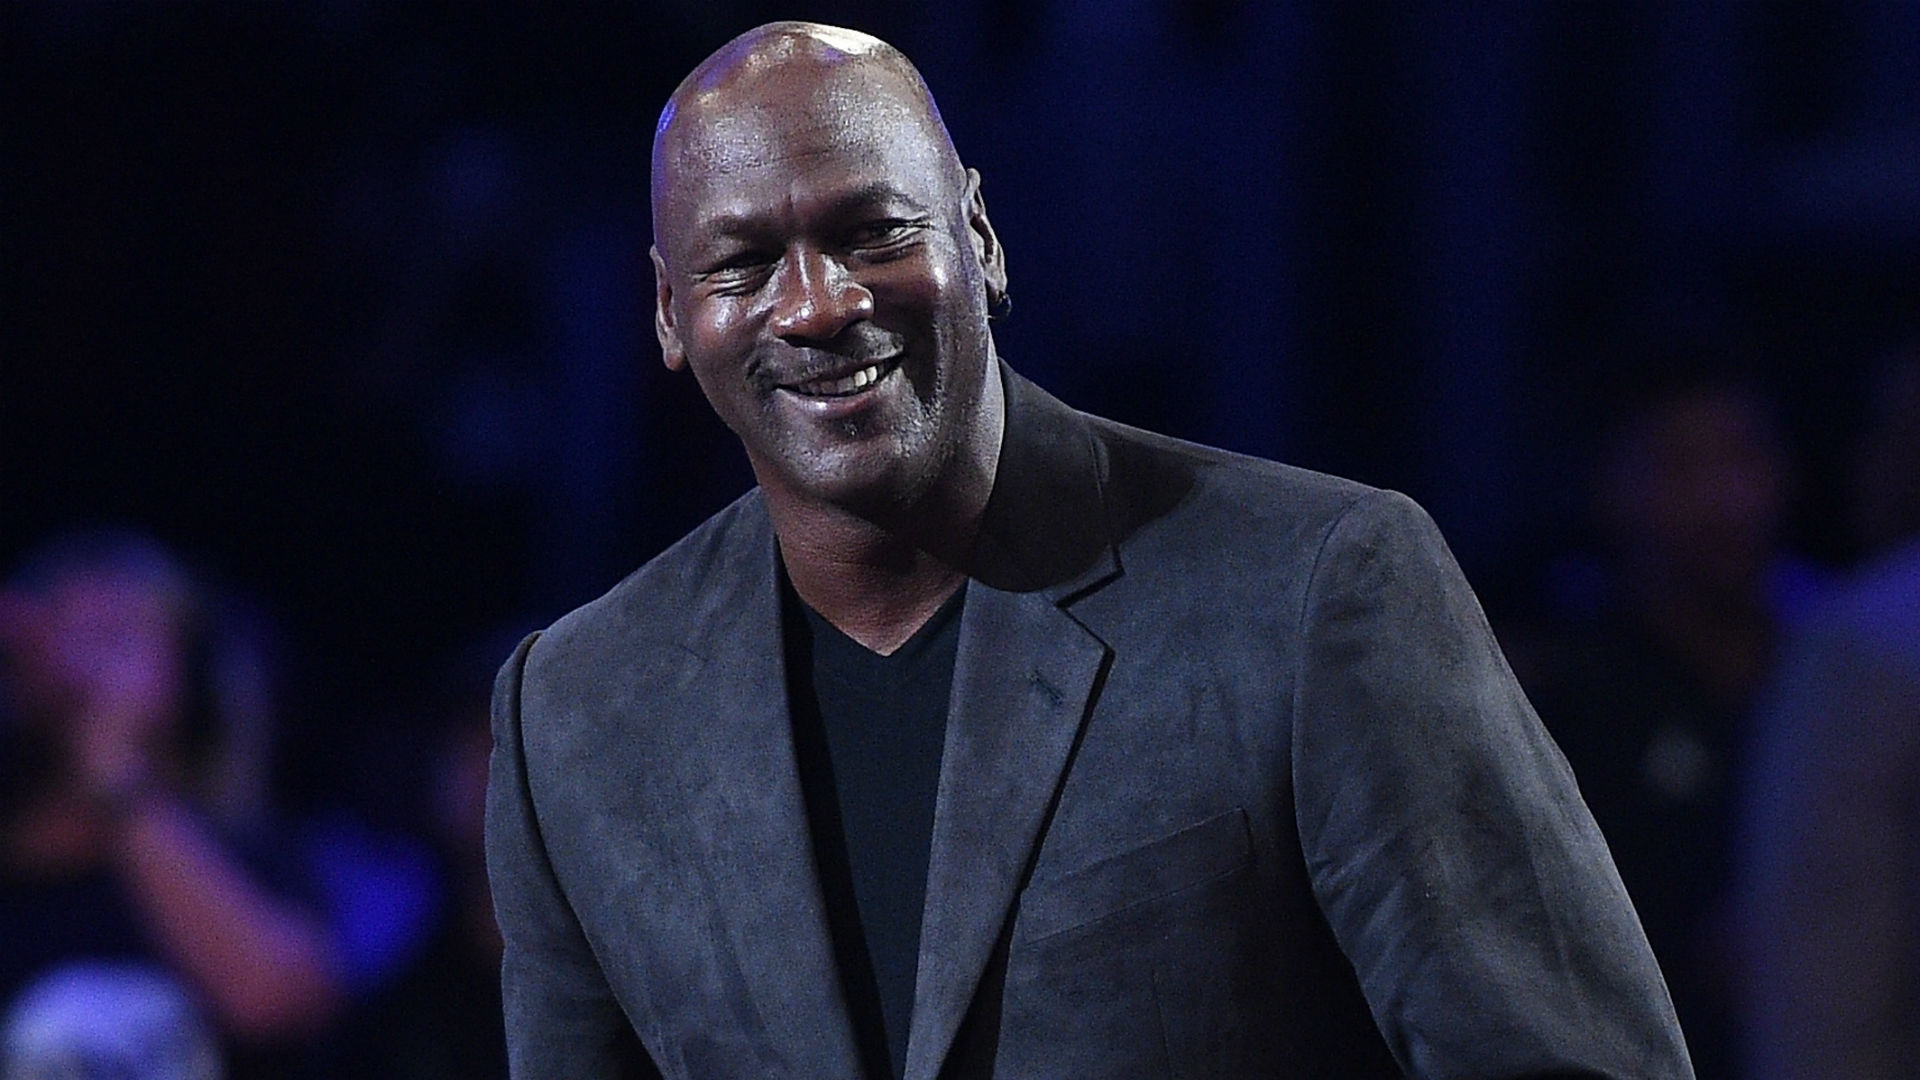 Michael Jordan References His Rings When Asked About Westbrook & Harden